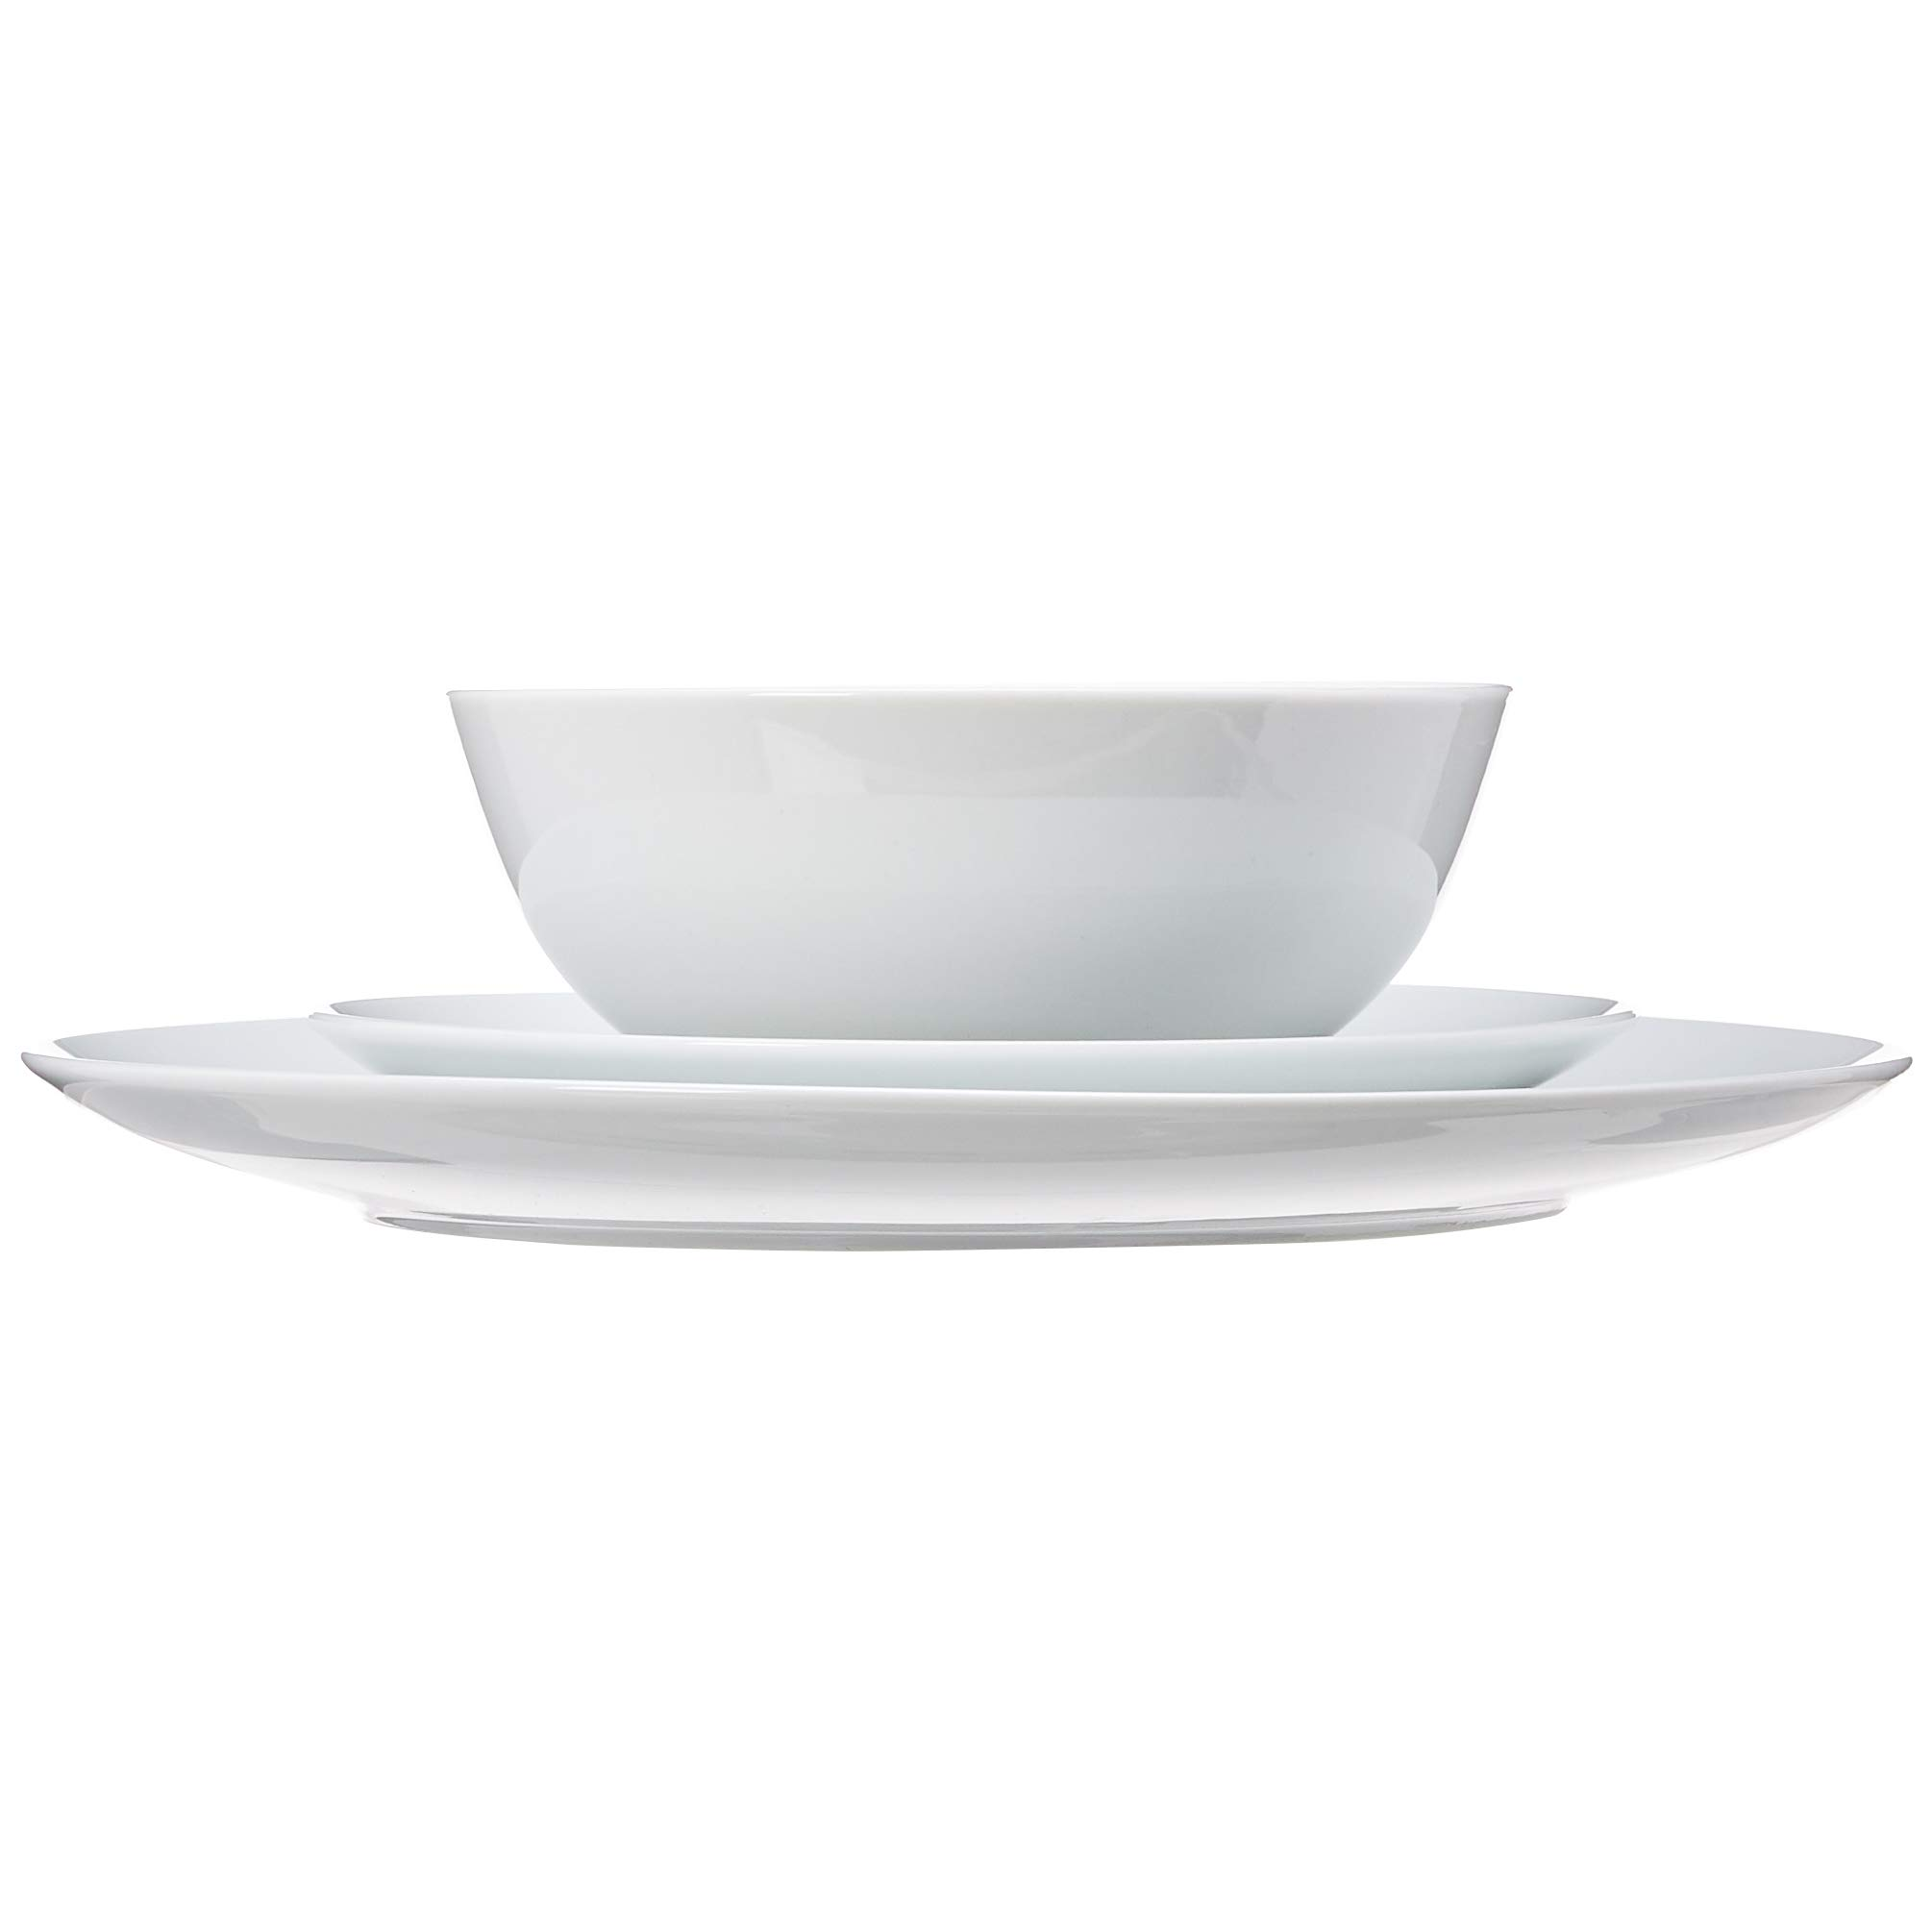 AmazonBasics 18-Piece Kitchen Dinnerware Set, Dishes, Bowls, Service for 6, White Porcelain Coupe by AmazonBasics (Image #5)